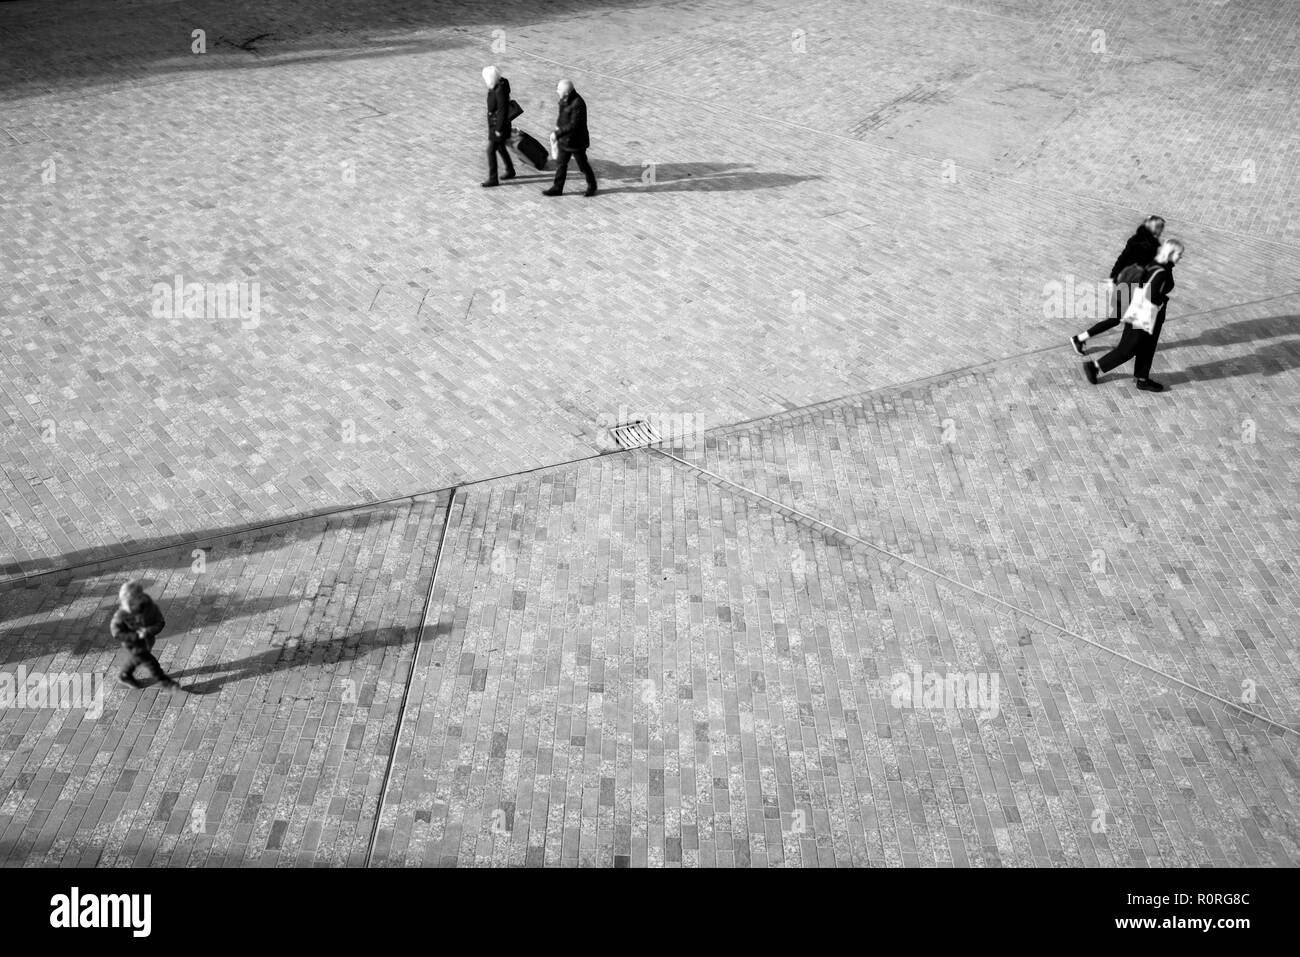 Blurred unrecognizable people from above walking on an open space square with shadows projecting on the floor - Stock Image